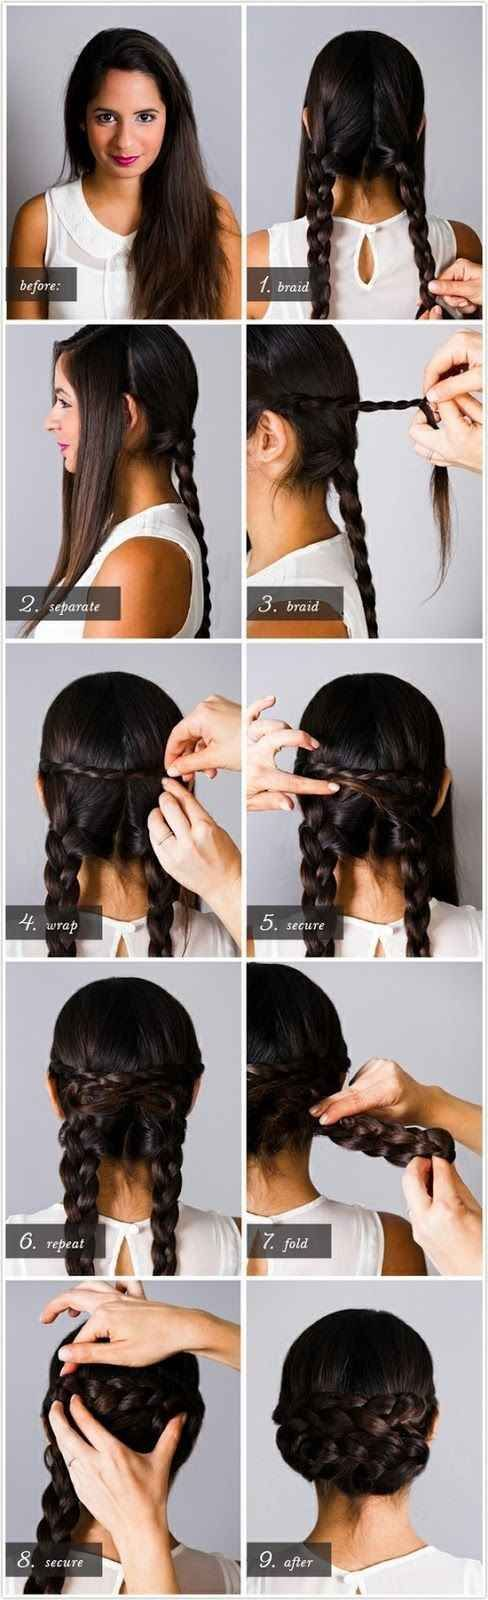 Braid four sections and pin your hair into this pretty updo.